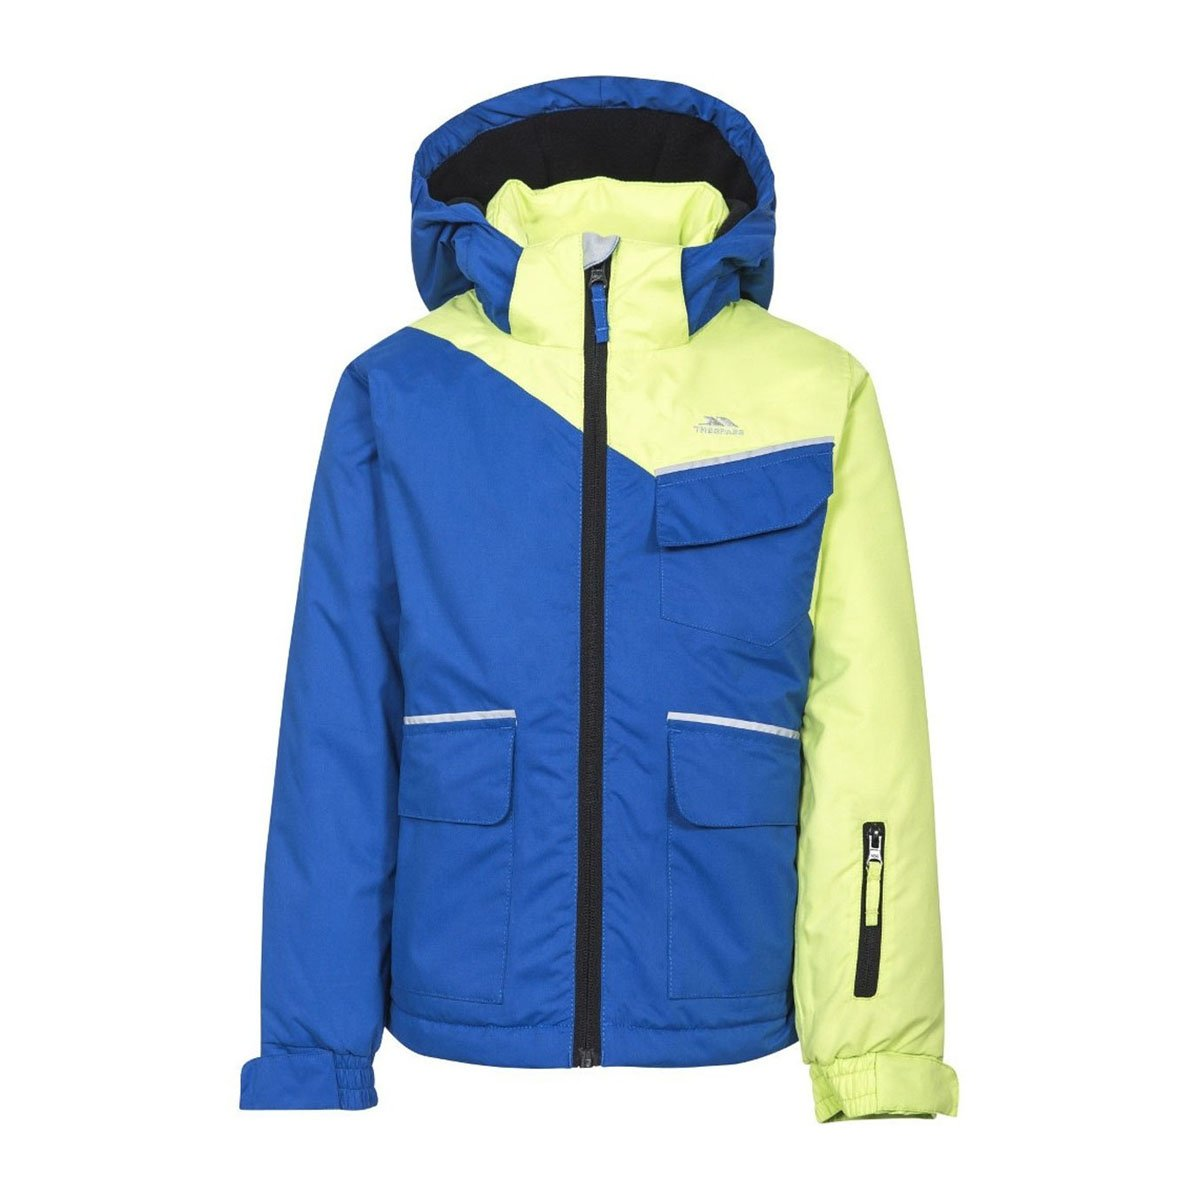 BOOMKIN KIDS SKI JACKET